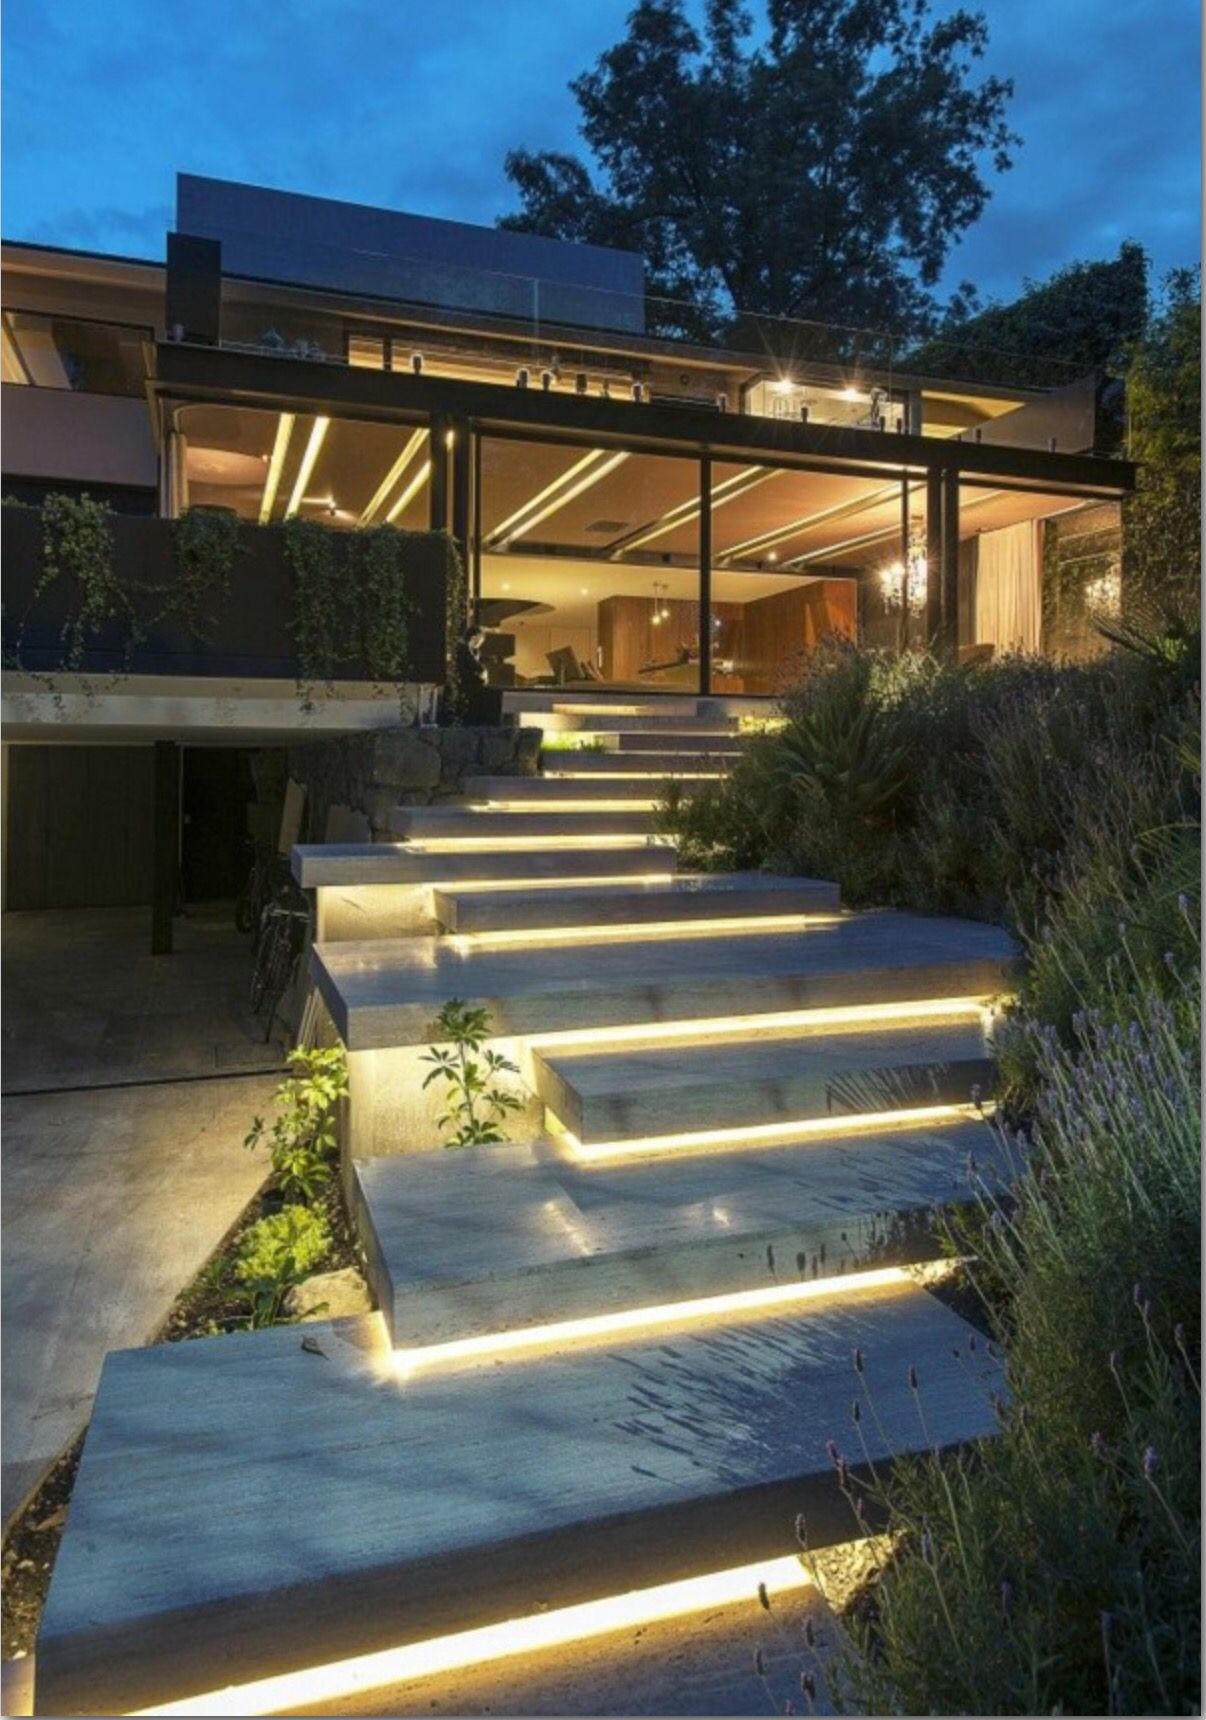 Chic modern garden design in chelsea by declan buckley with steps and - Find This Pin And More On Garden Design By Kattnig